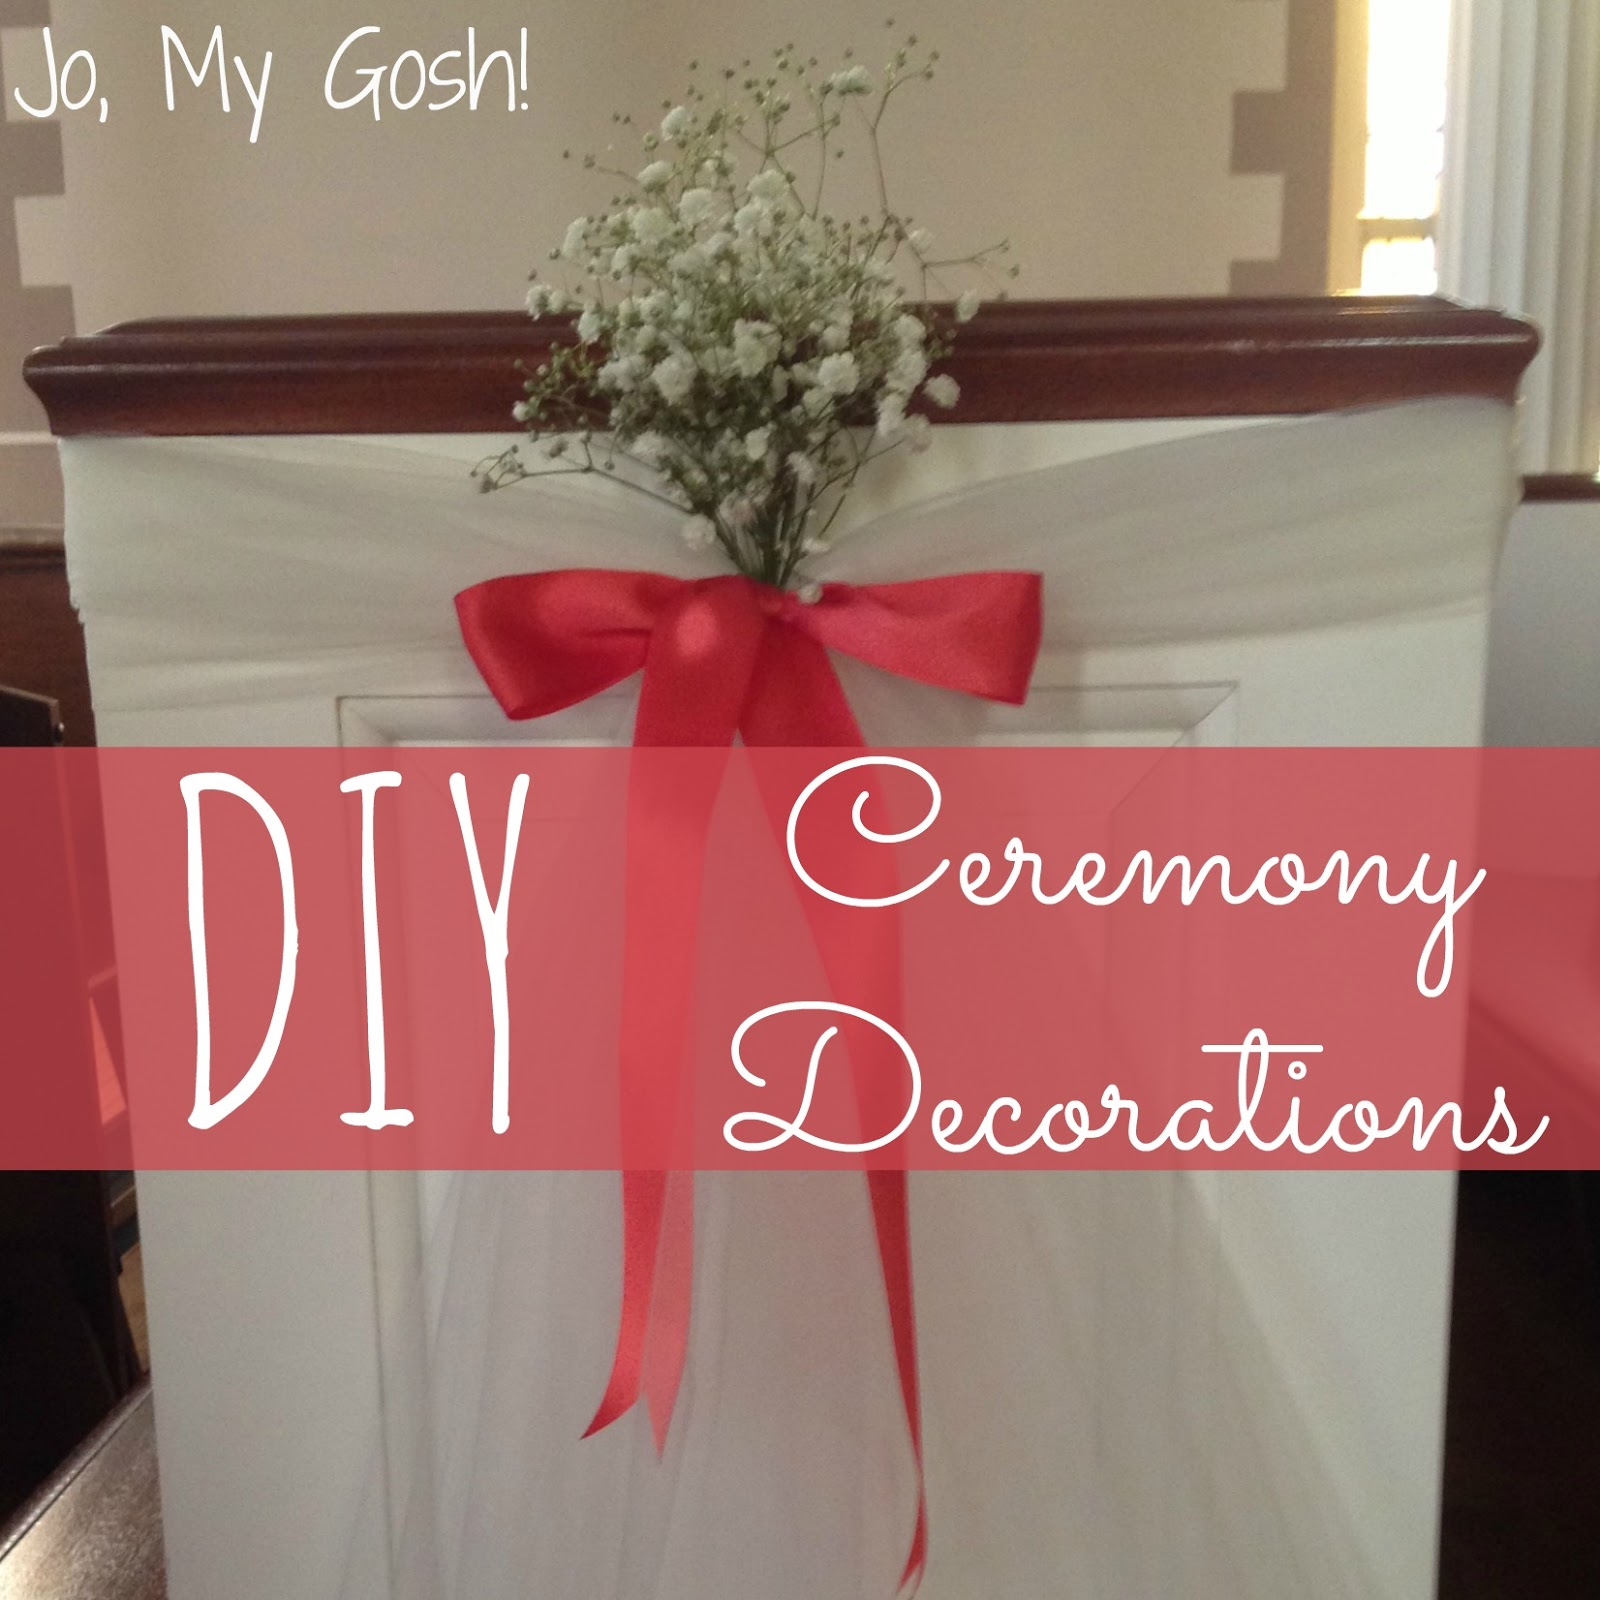 jo my gosh diy wedding ceremony decorations